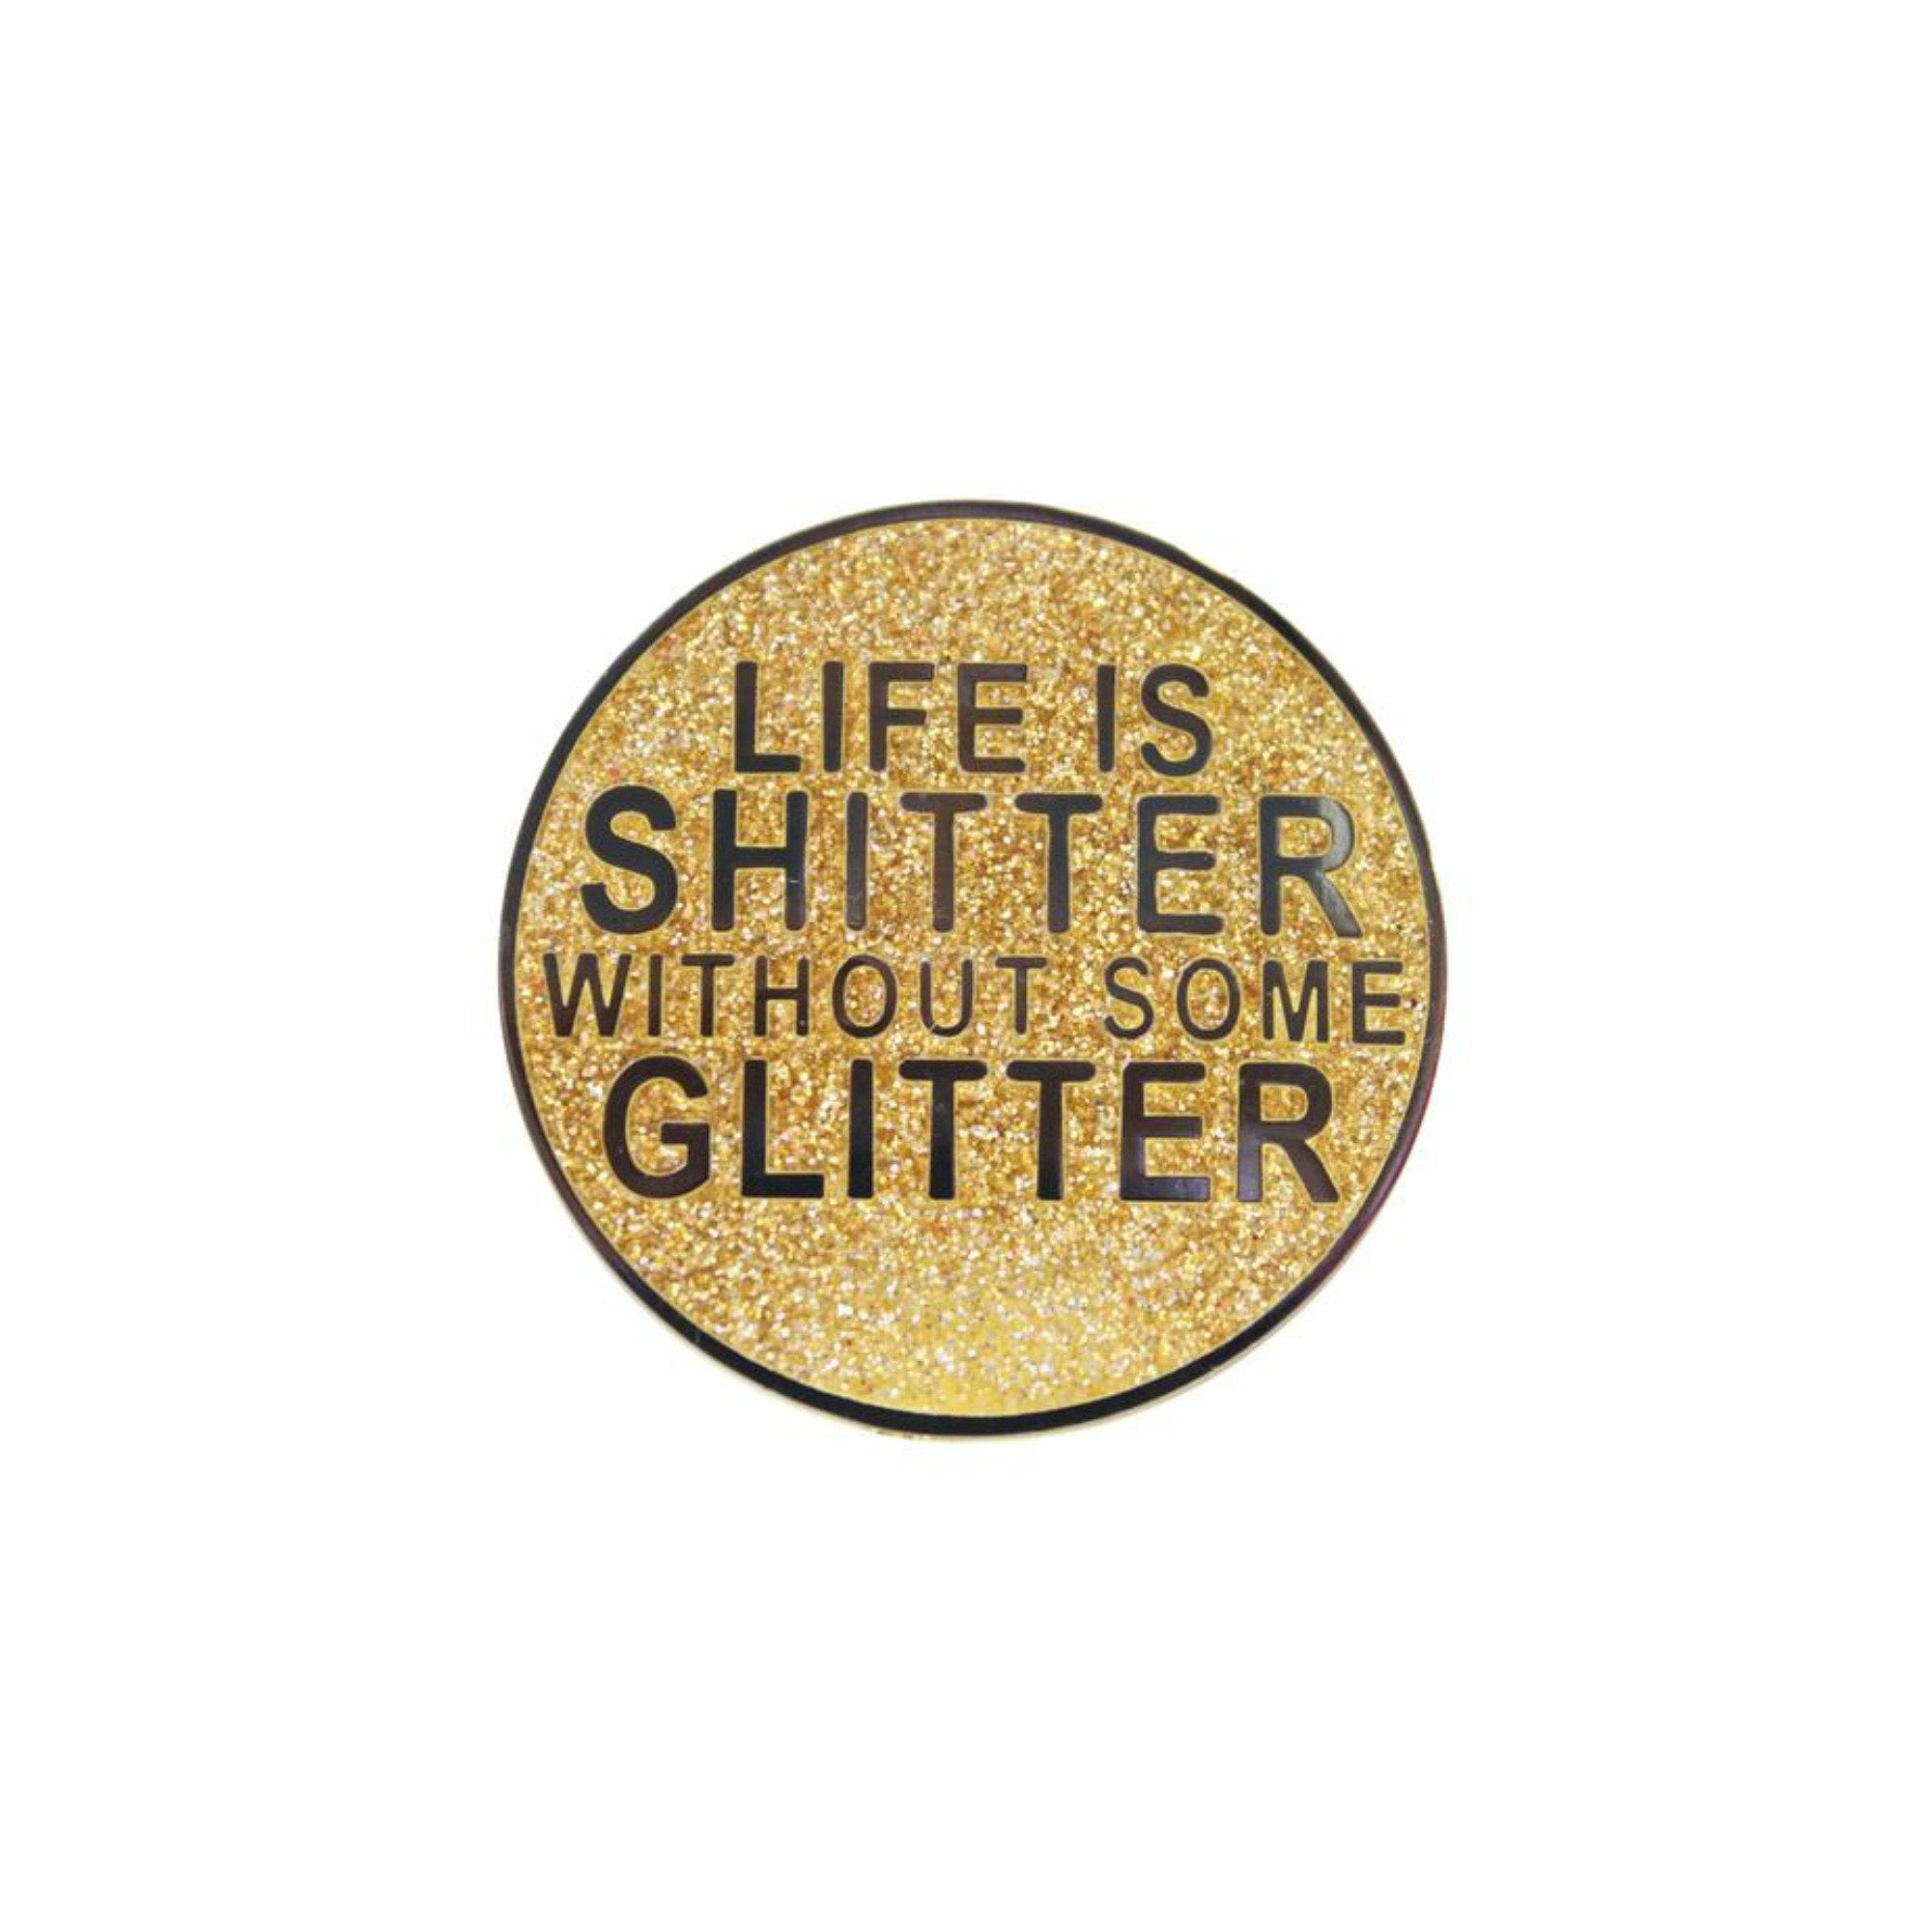 Life Is Shitter Without Some Glitter Lapel Pin Badge - Minimum Mouse